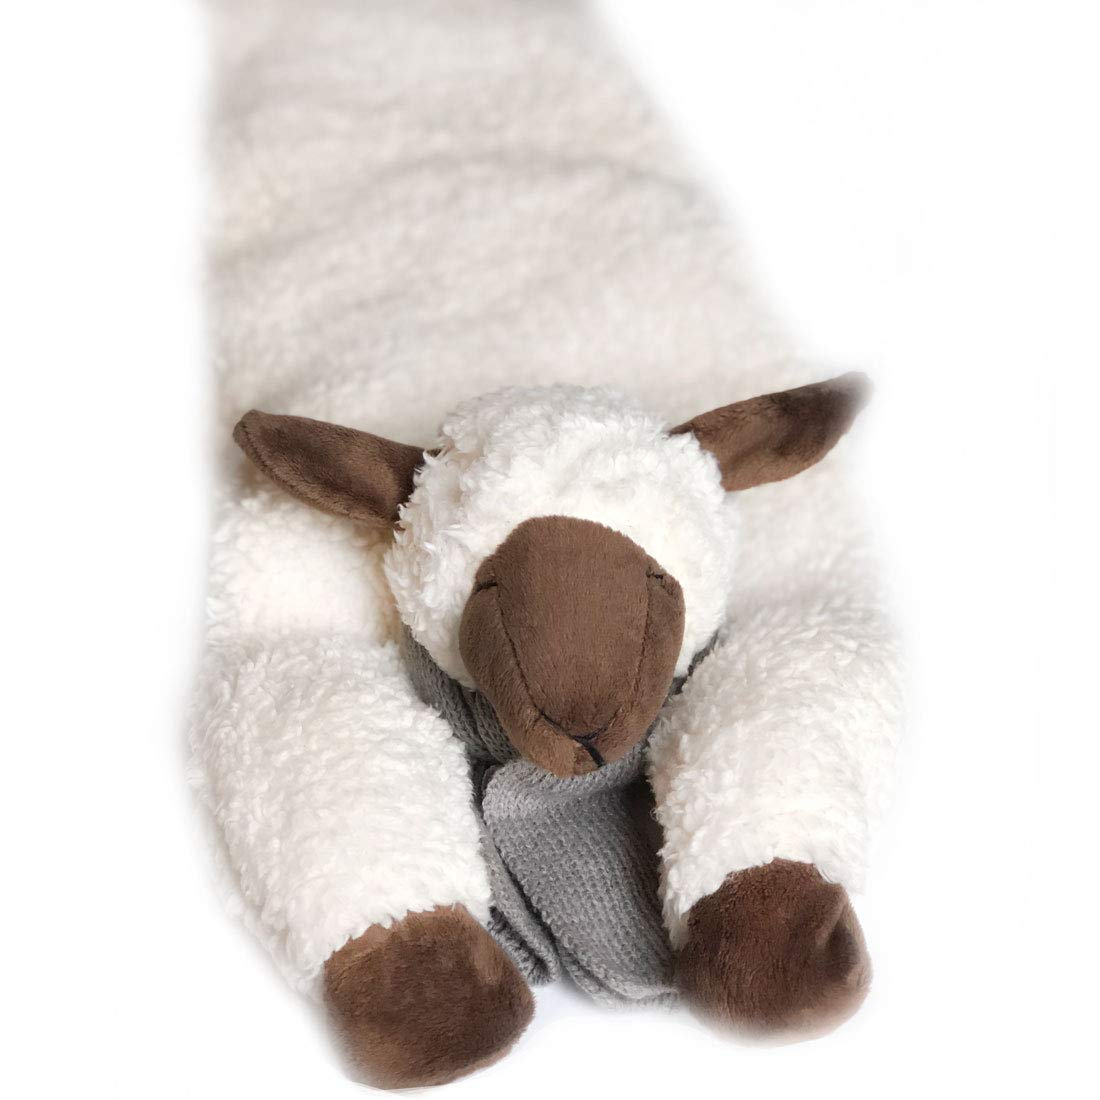 Huggaroo Lamb Weighted Lap Pad: 3.6 lbs, 29 x 8 inches, Easy Care - 100% Washable